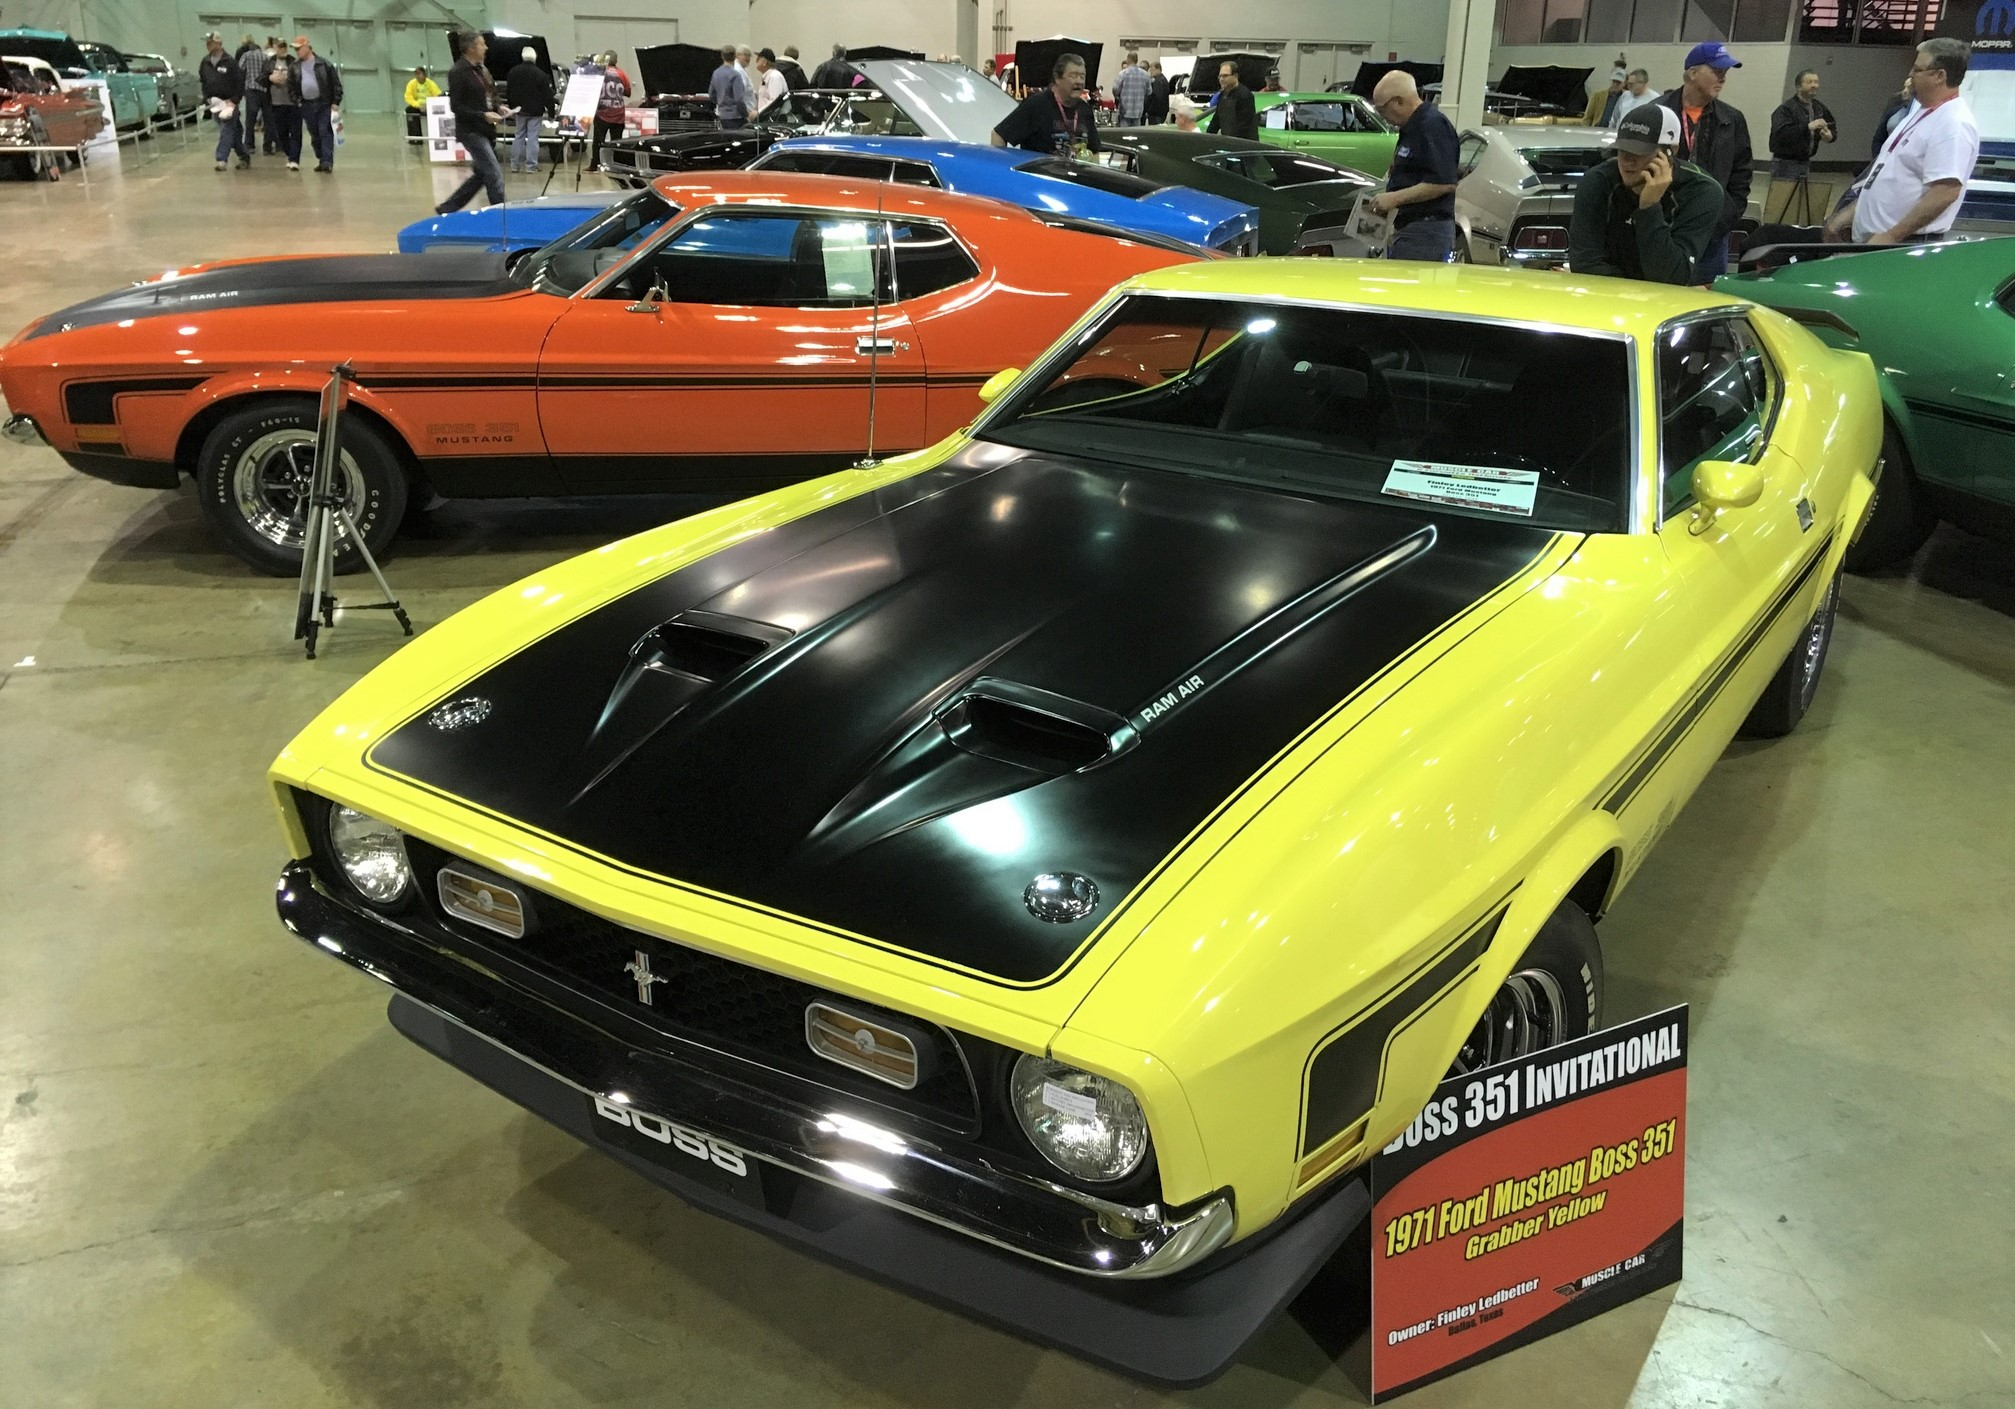 , Muscle cars, Corvettes take Chicago by storm, ClassicCars.com Journal